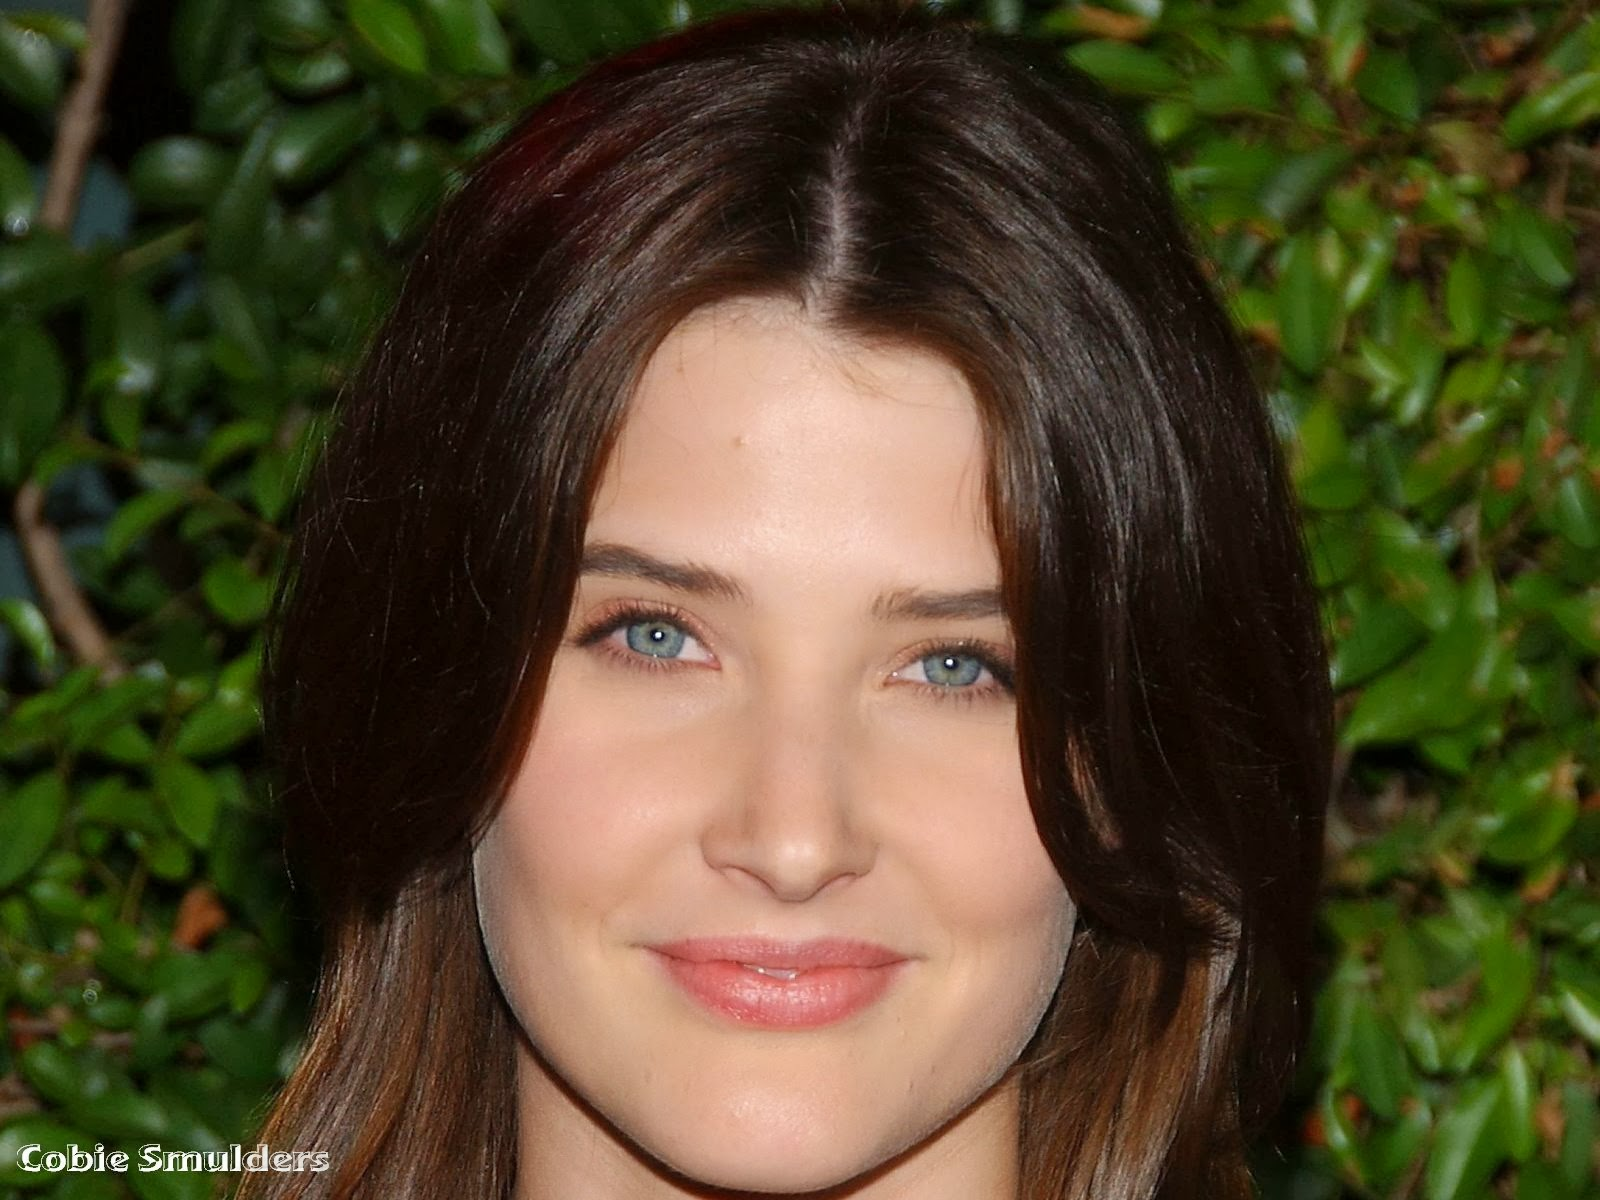 Cobie Smulders HD Wallpaper Prime Wallpapers 1600x1200